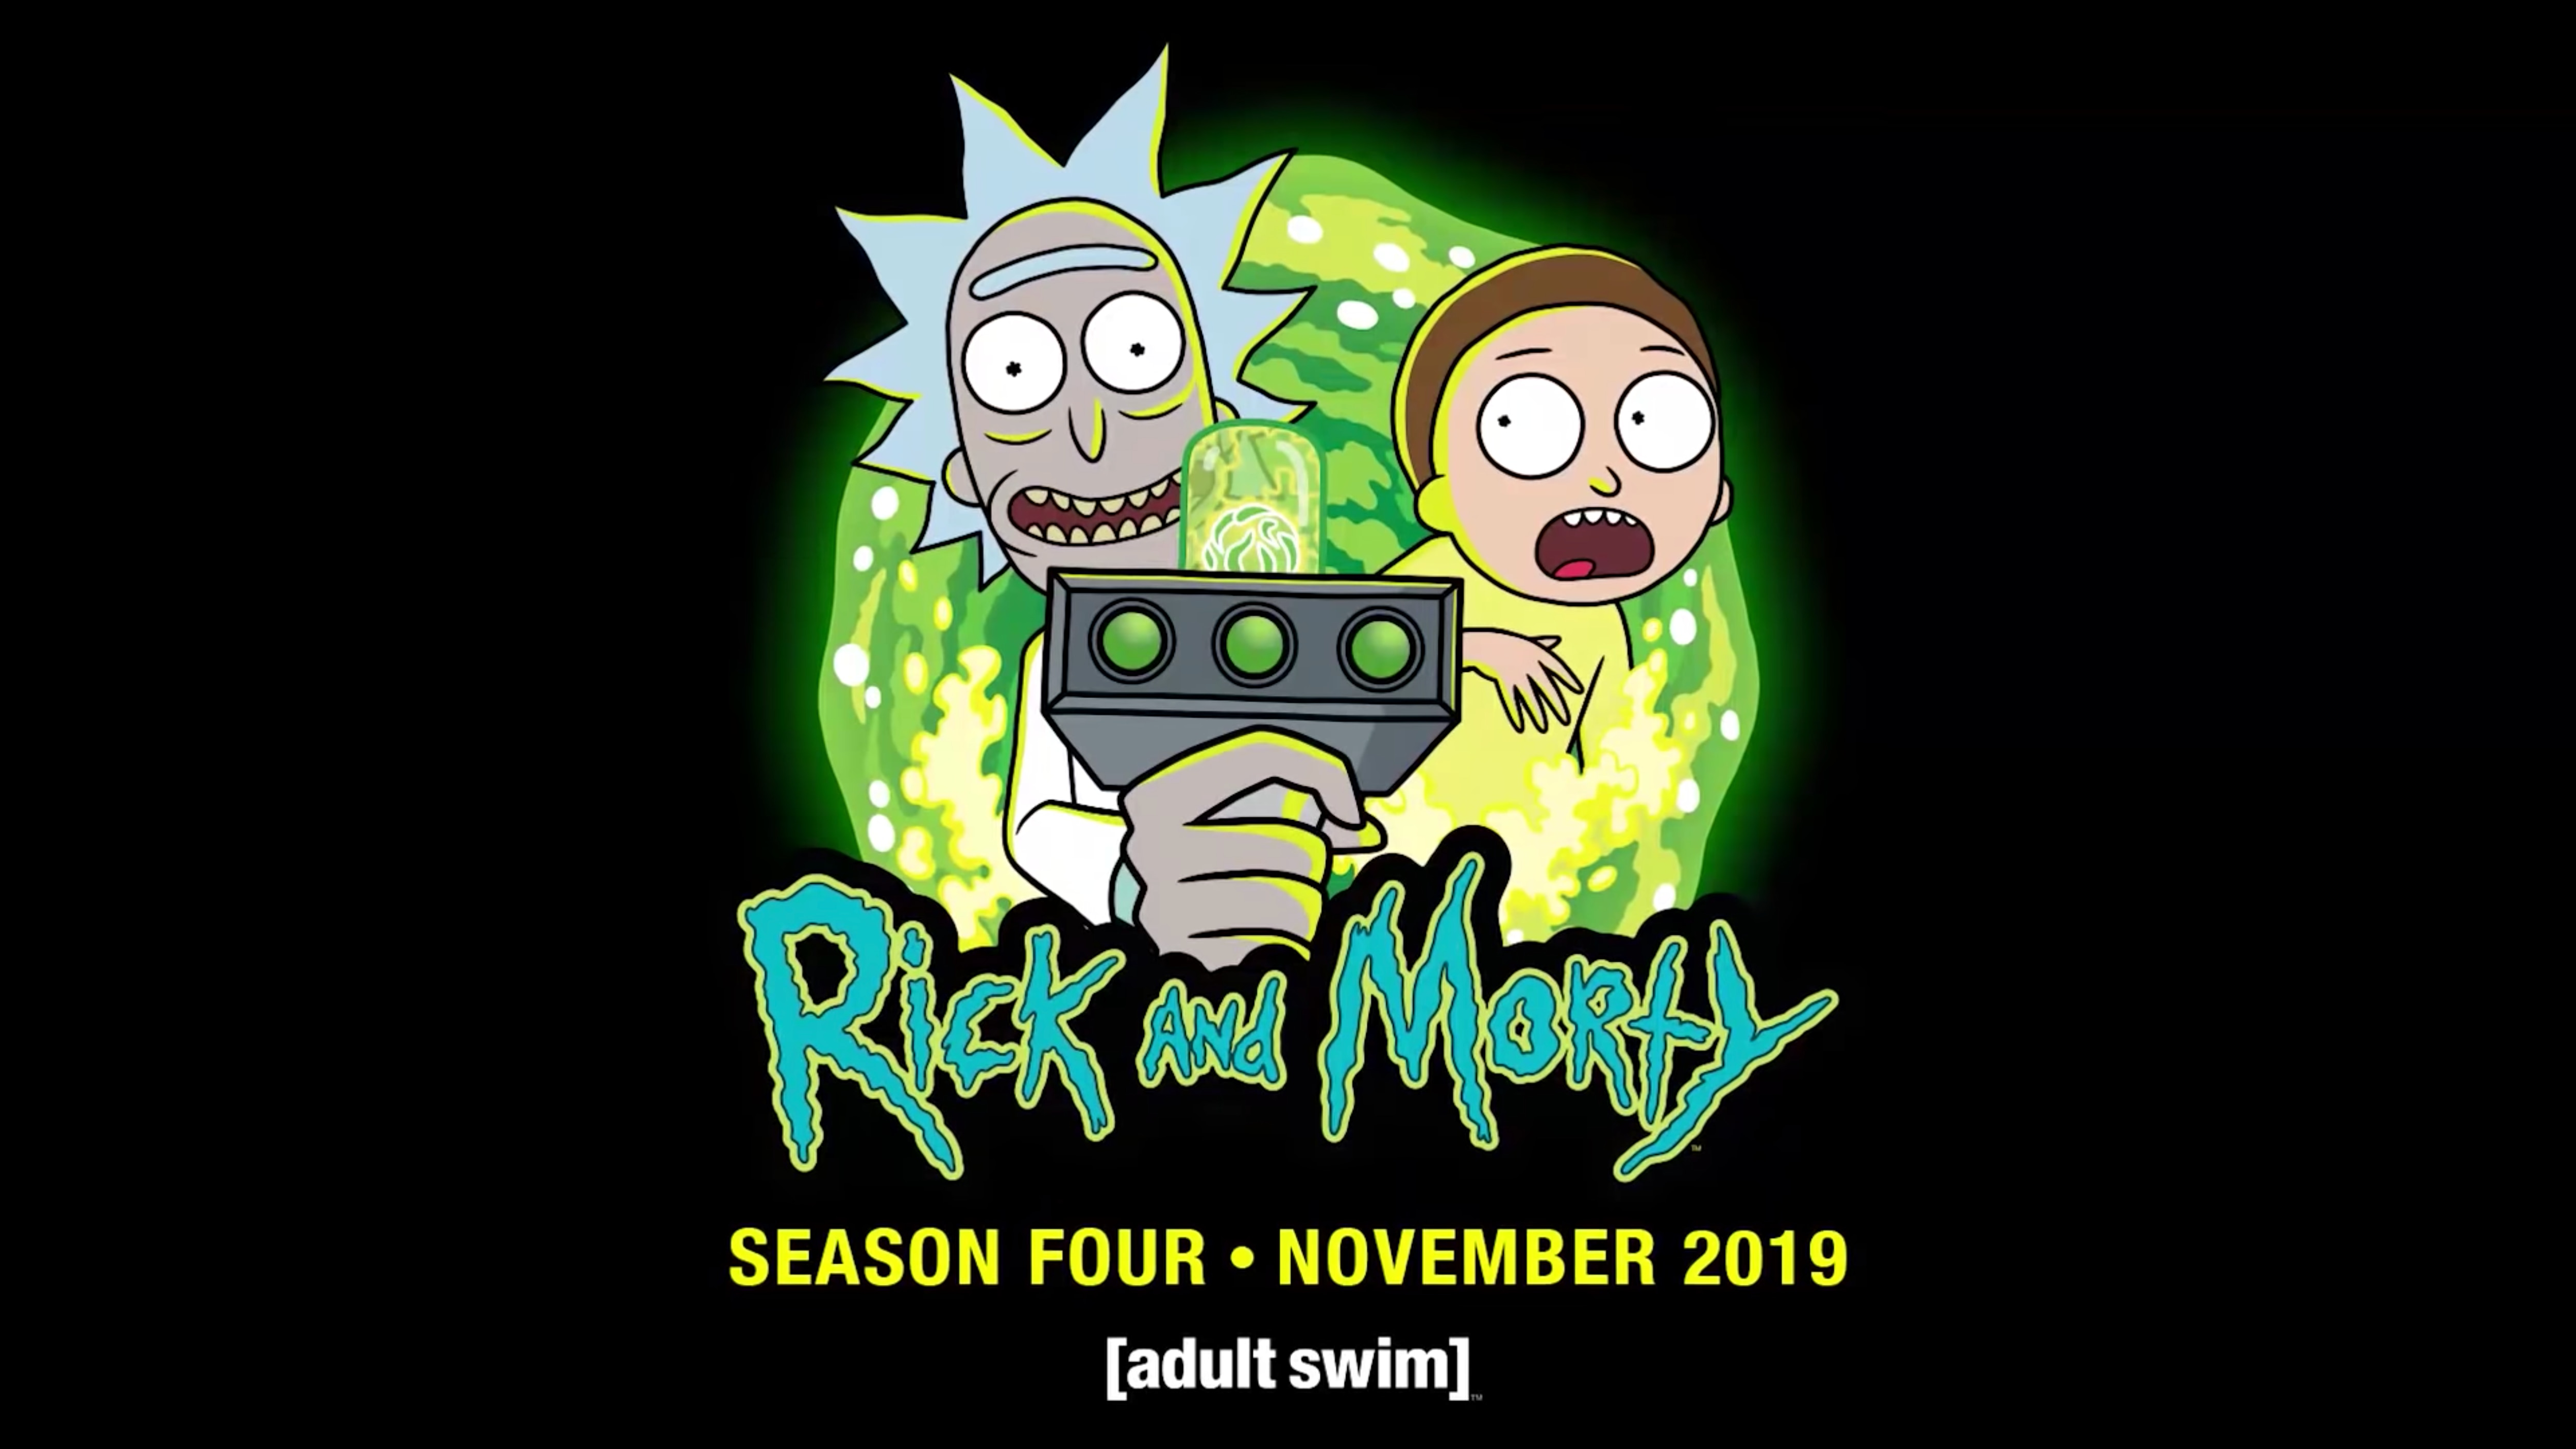 Rick and Morty Season 4 release date details we know so far